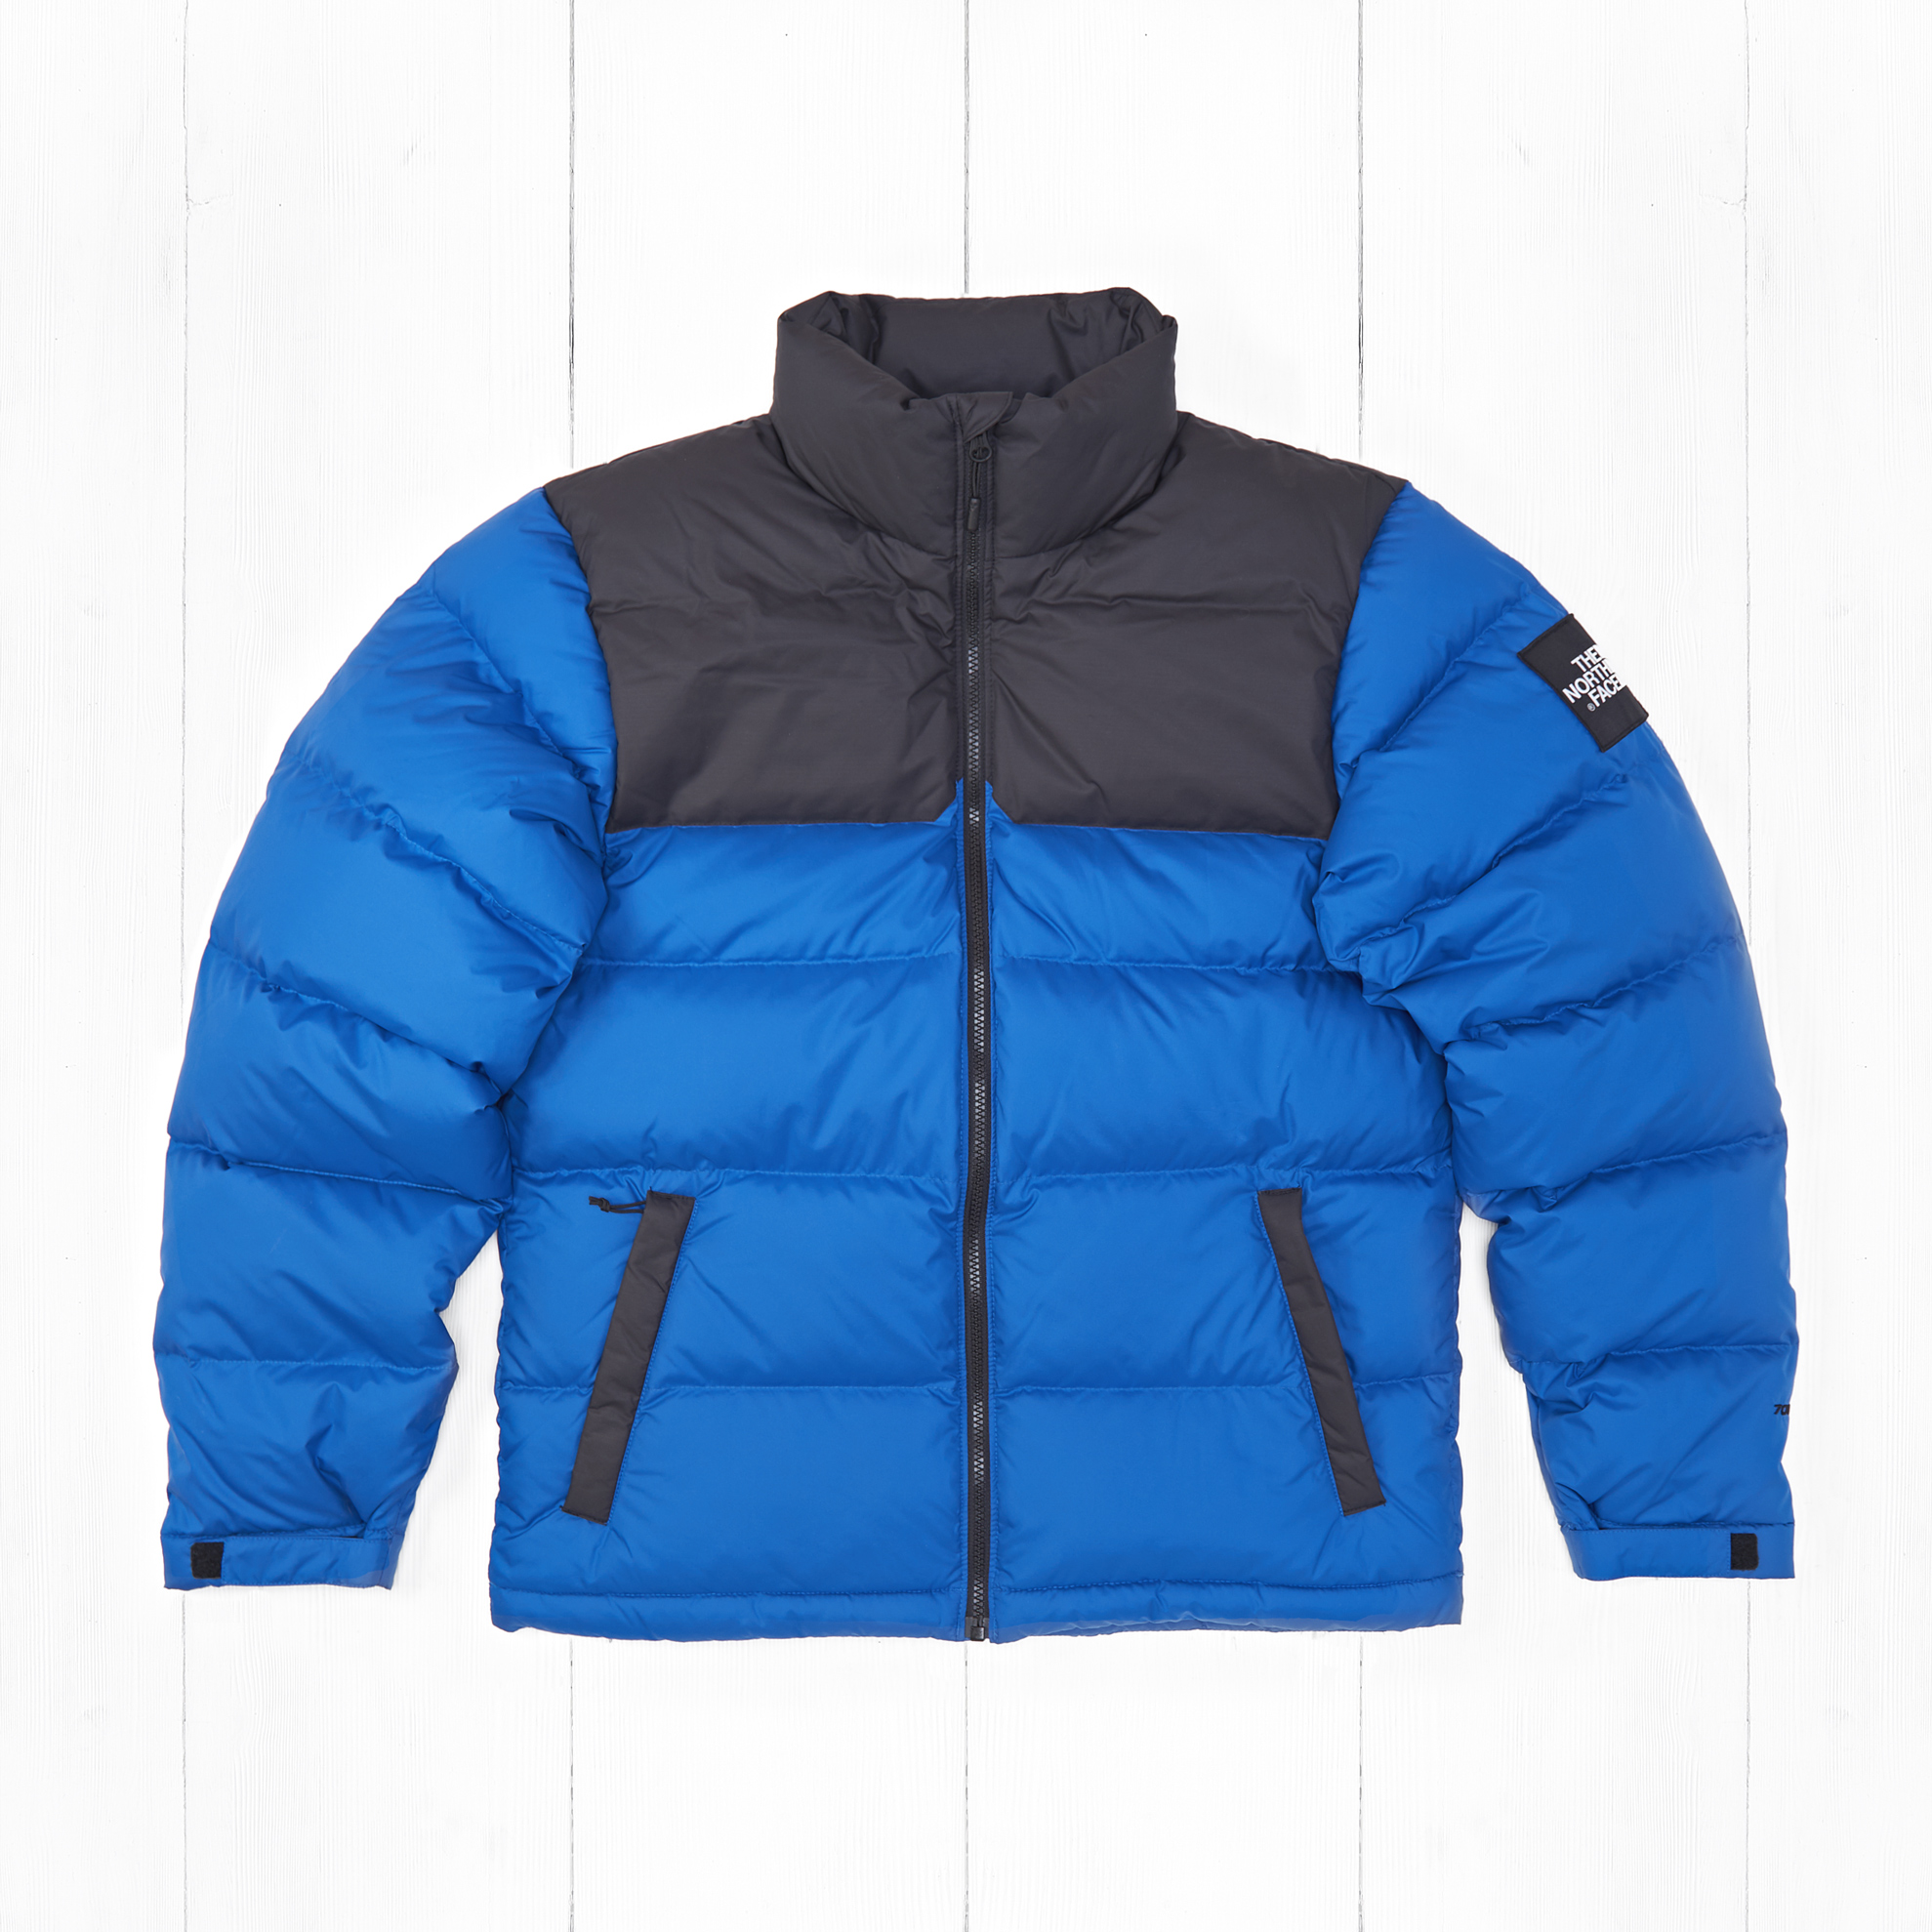 Пуховик The North Face M 1992 NUPTSE Cobalt Blue